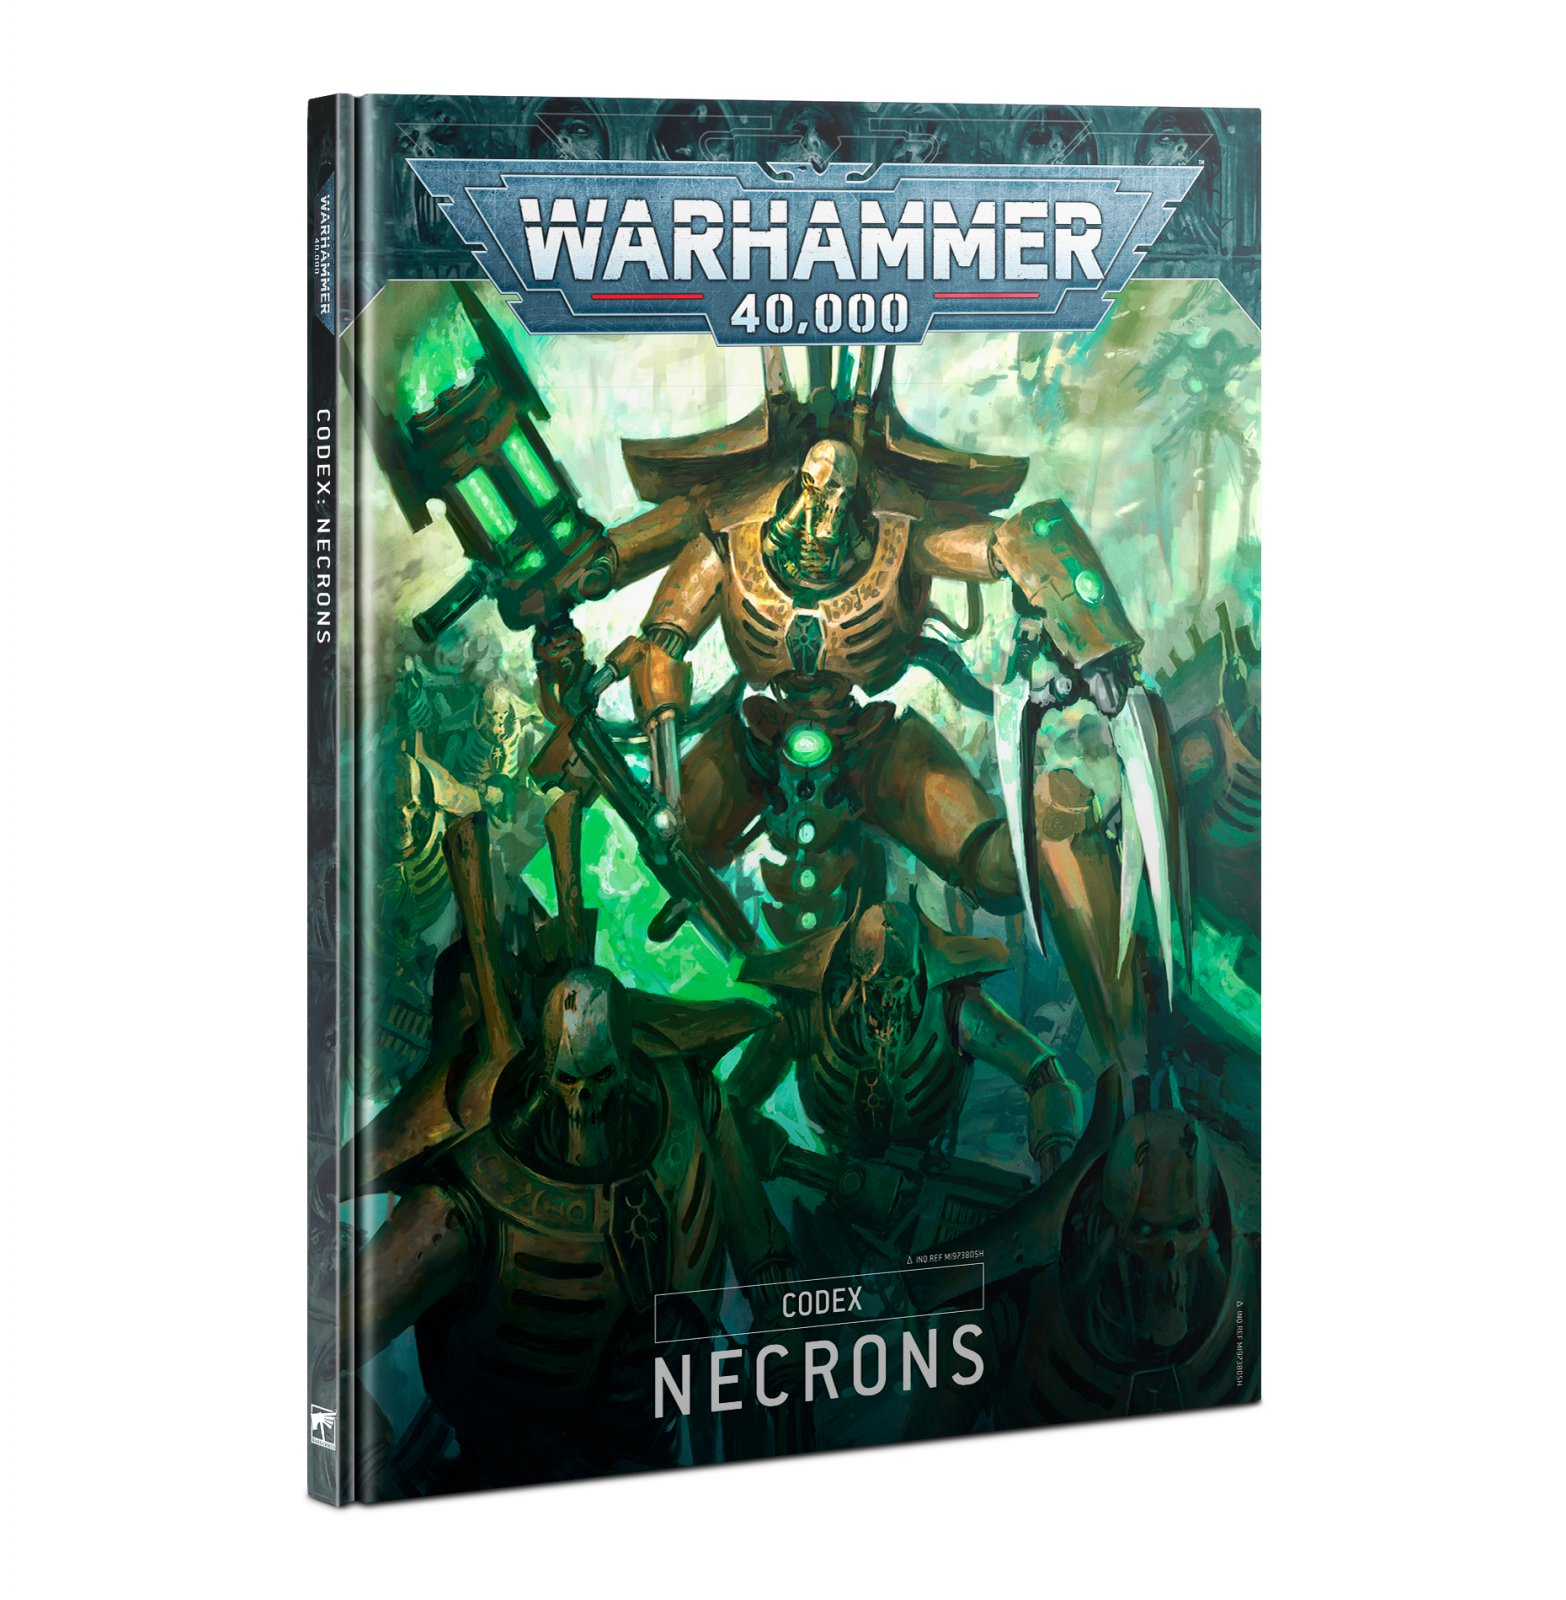 CODEX: NECRONS (HB) (ENGLISH) E:B200b